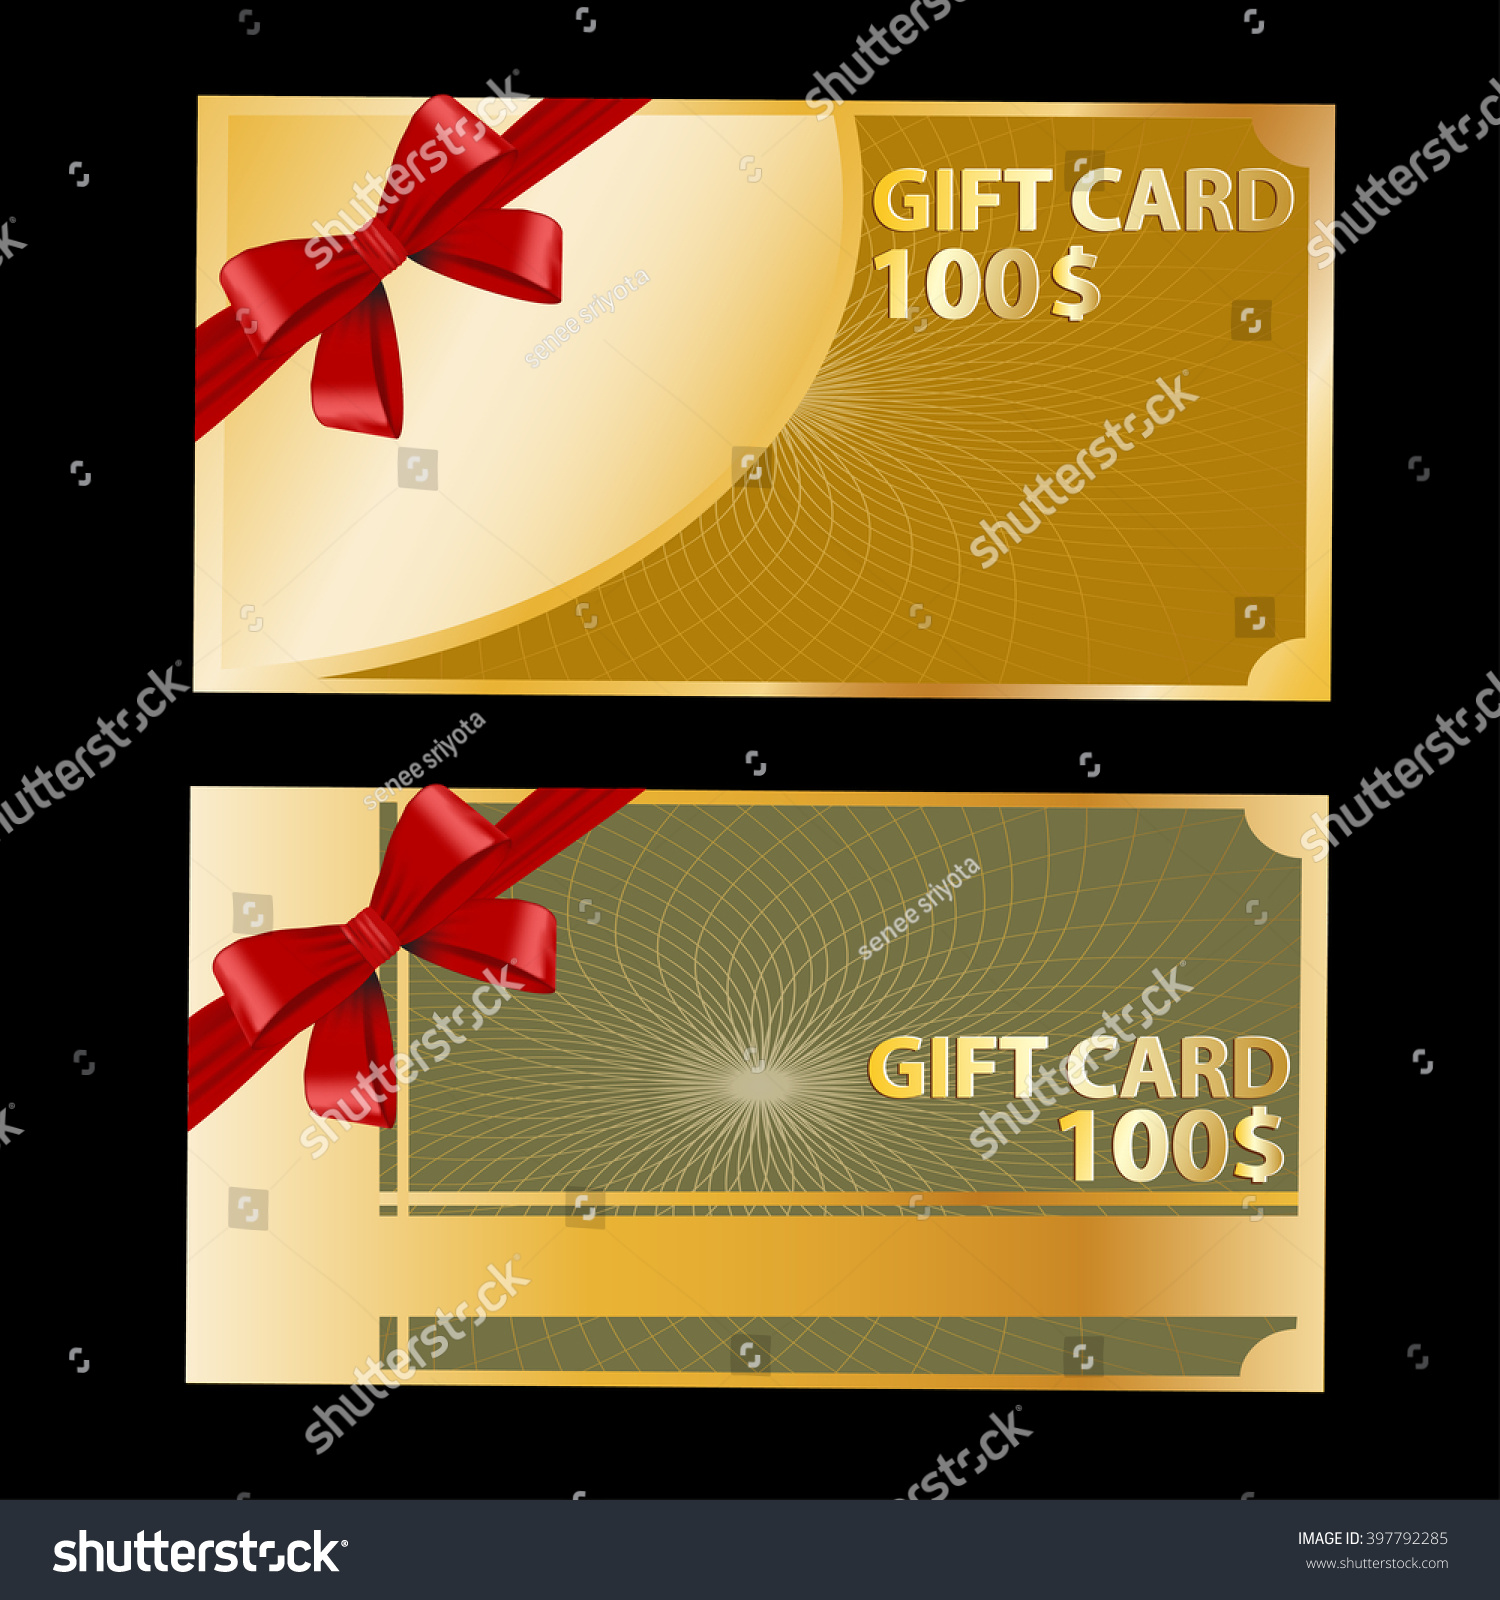 Gift Coupon Gift Card Discount Card Stock Vector 397792285 ...